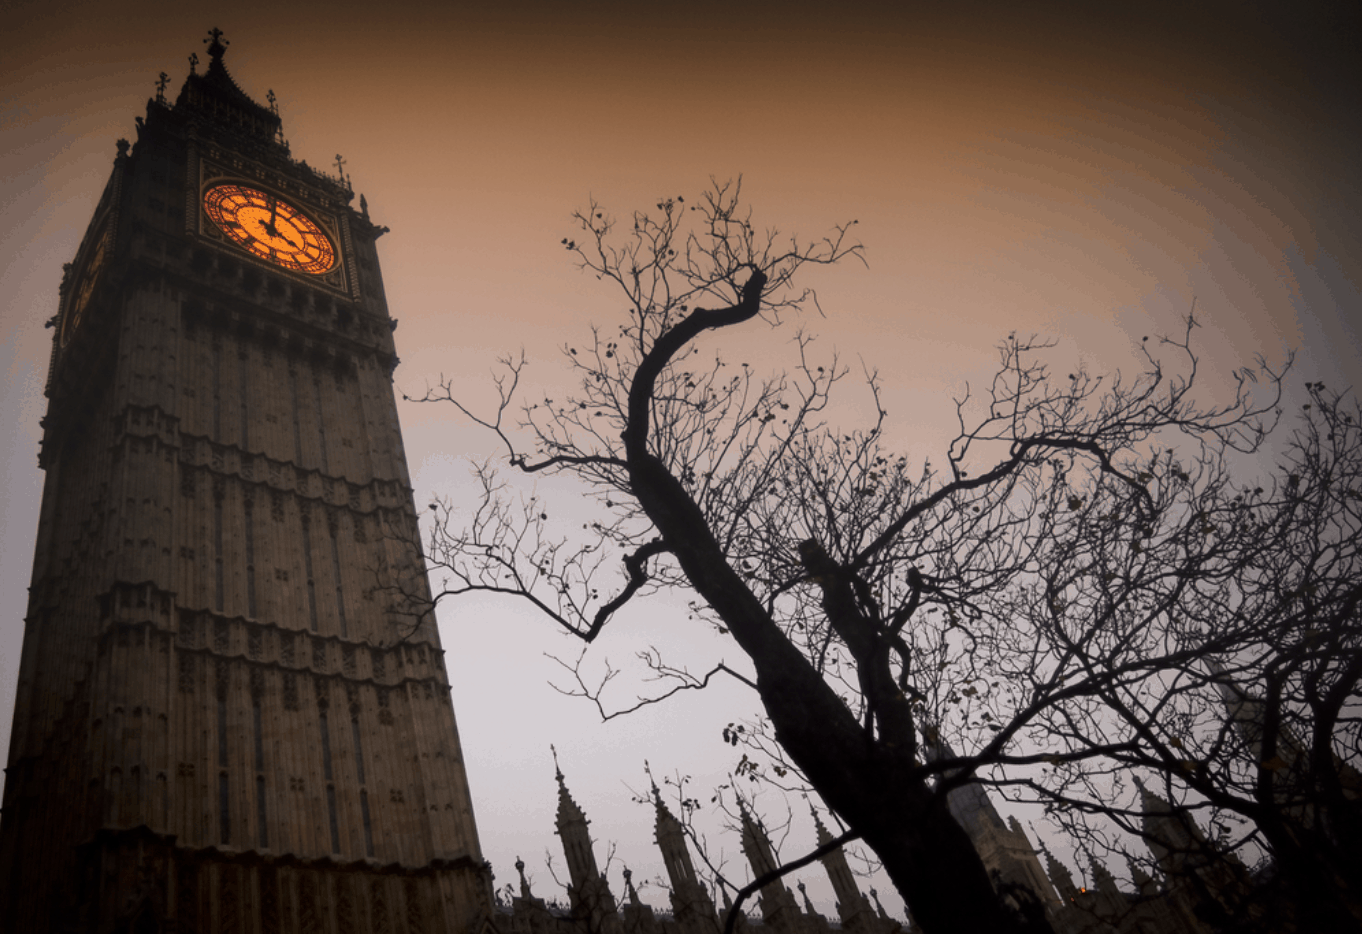 Big Ben shot from a low angle looking spooky